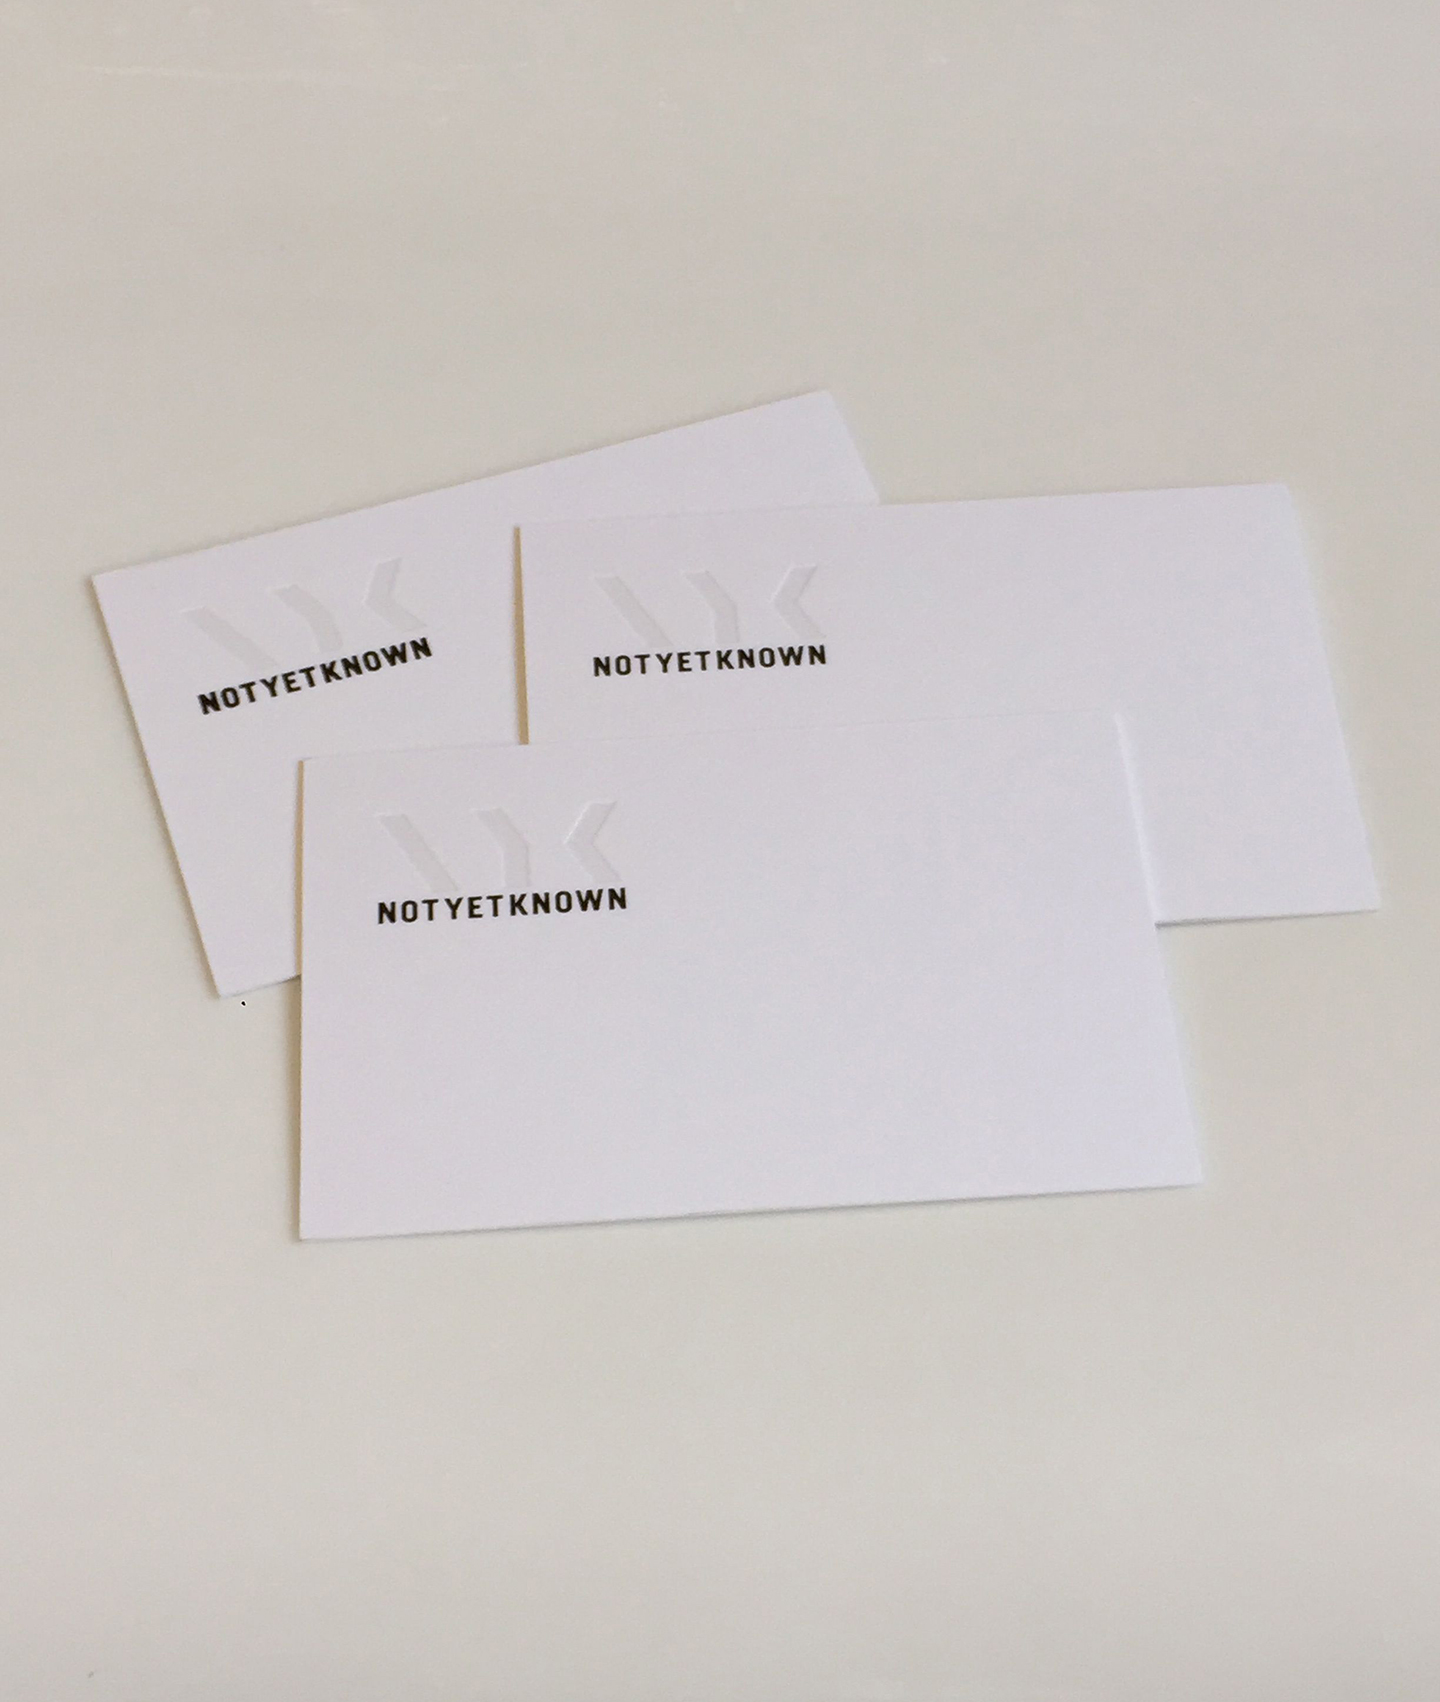 Smells Like Fresh Print — NotYetKnown Business Cards - Design ...